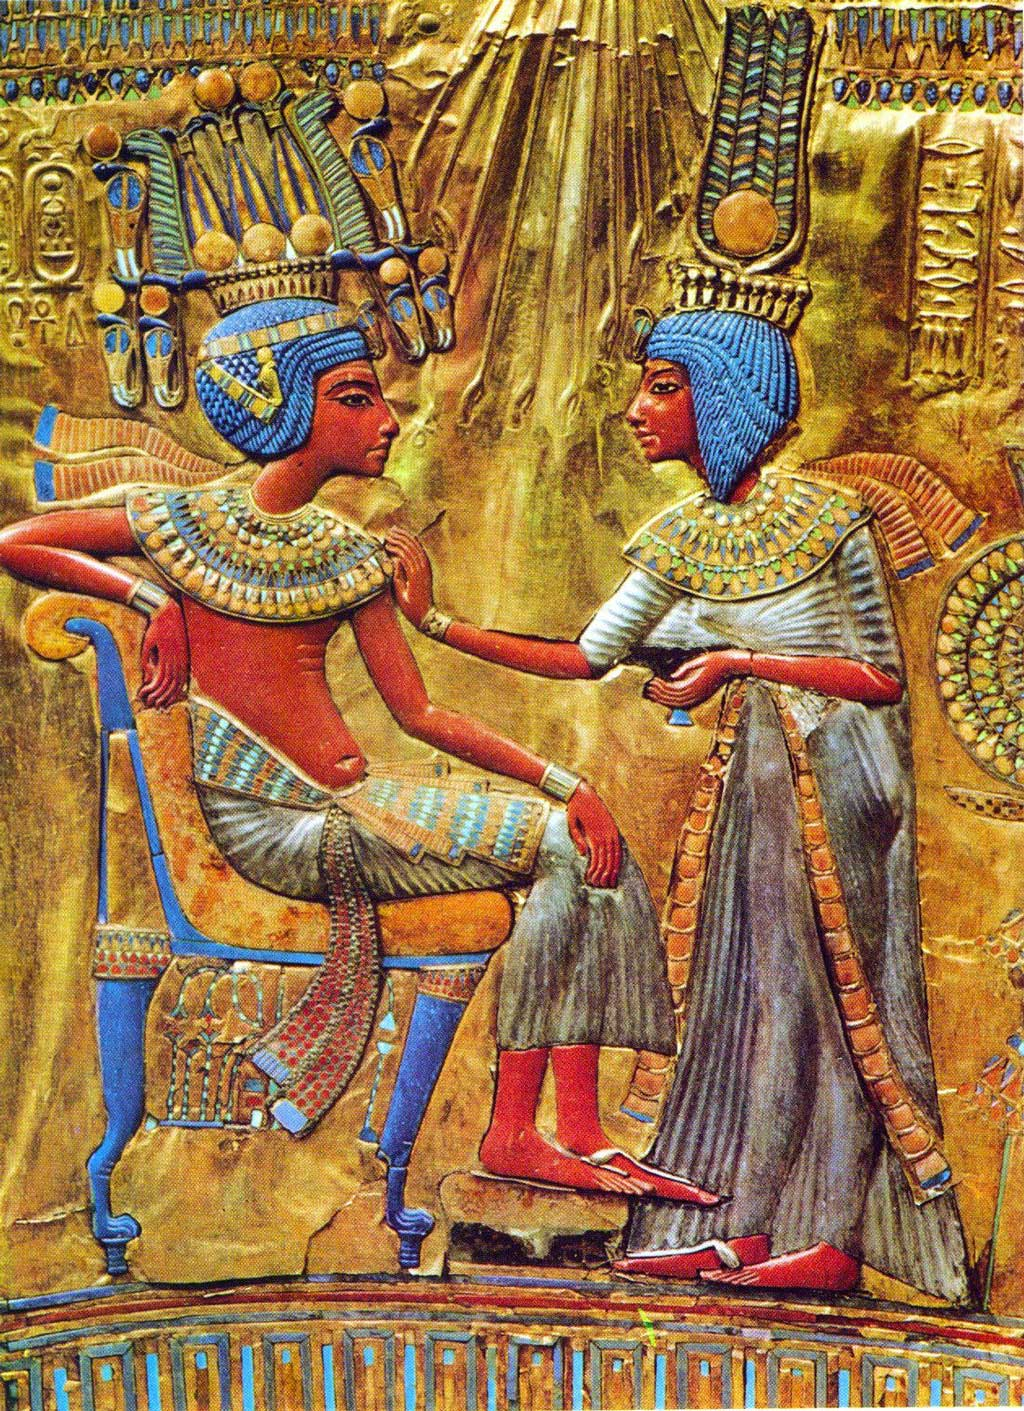 The image comes from the gold-plated throne of Tutankhamun. It depicts the king seated on a couch while his wife, Ankhsenamun, stands before him, touching his shoulder. Both figures are vibrantly colored with umber skin, indigo hair, and grayish-white garments.